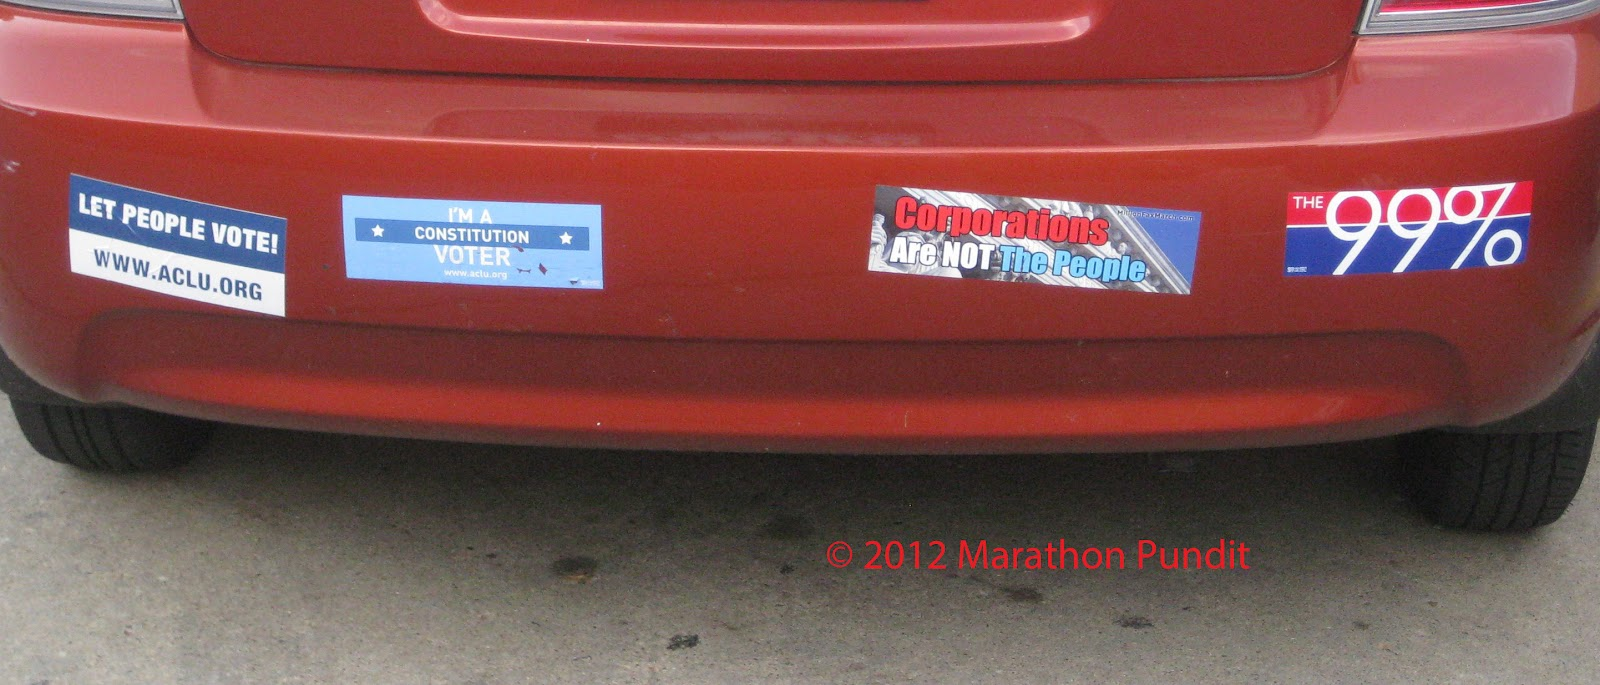 The two bumper stickers on the left are from the aclu the third one reads corporations are not the people